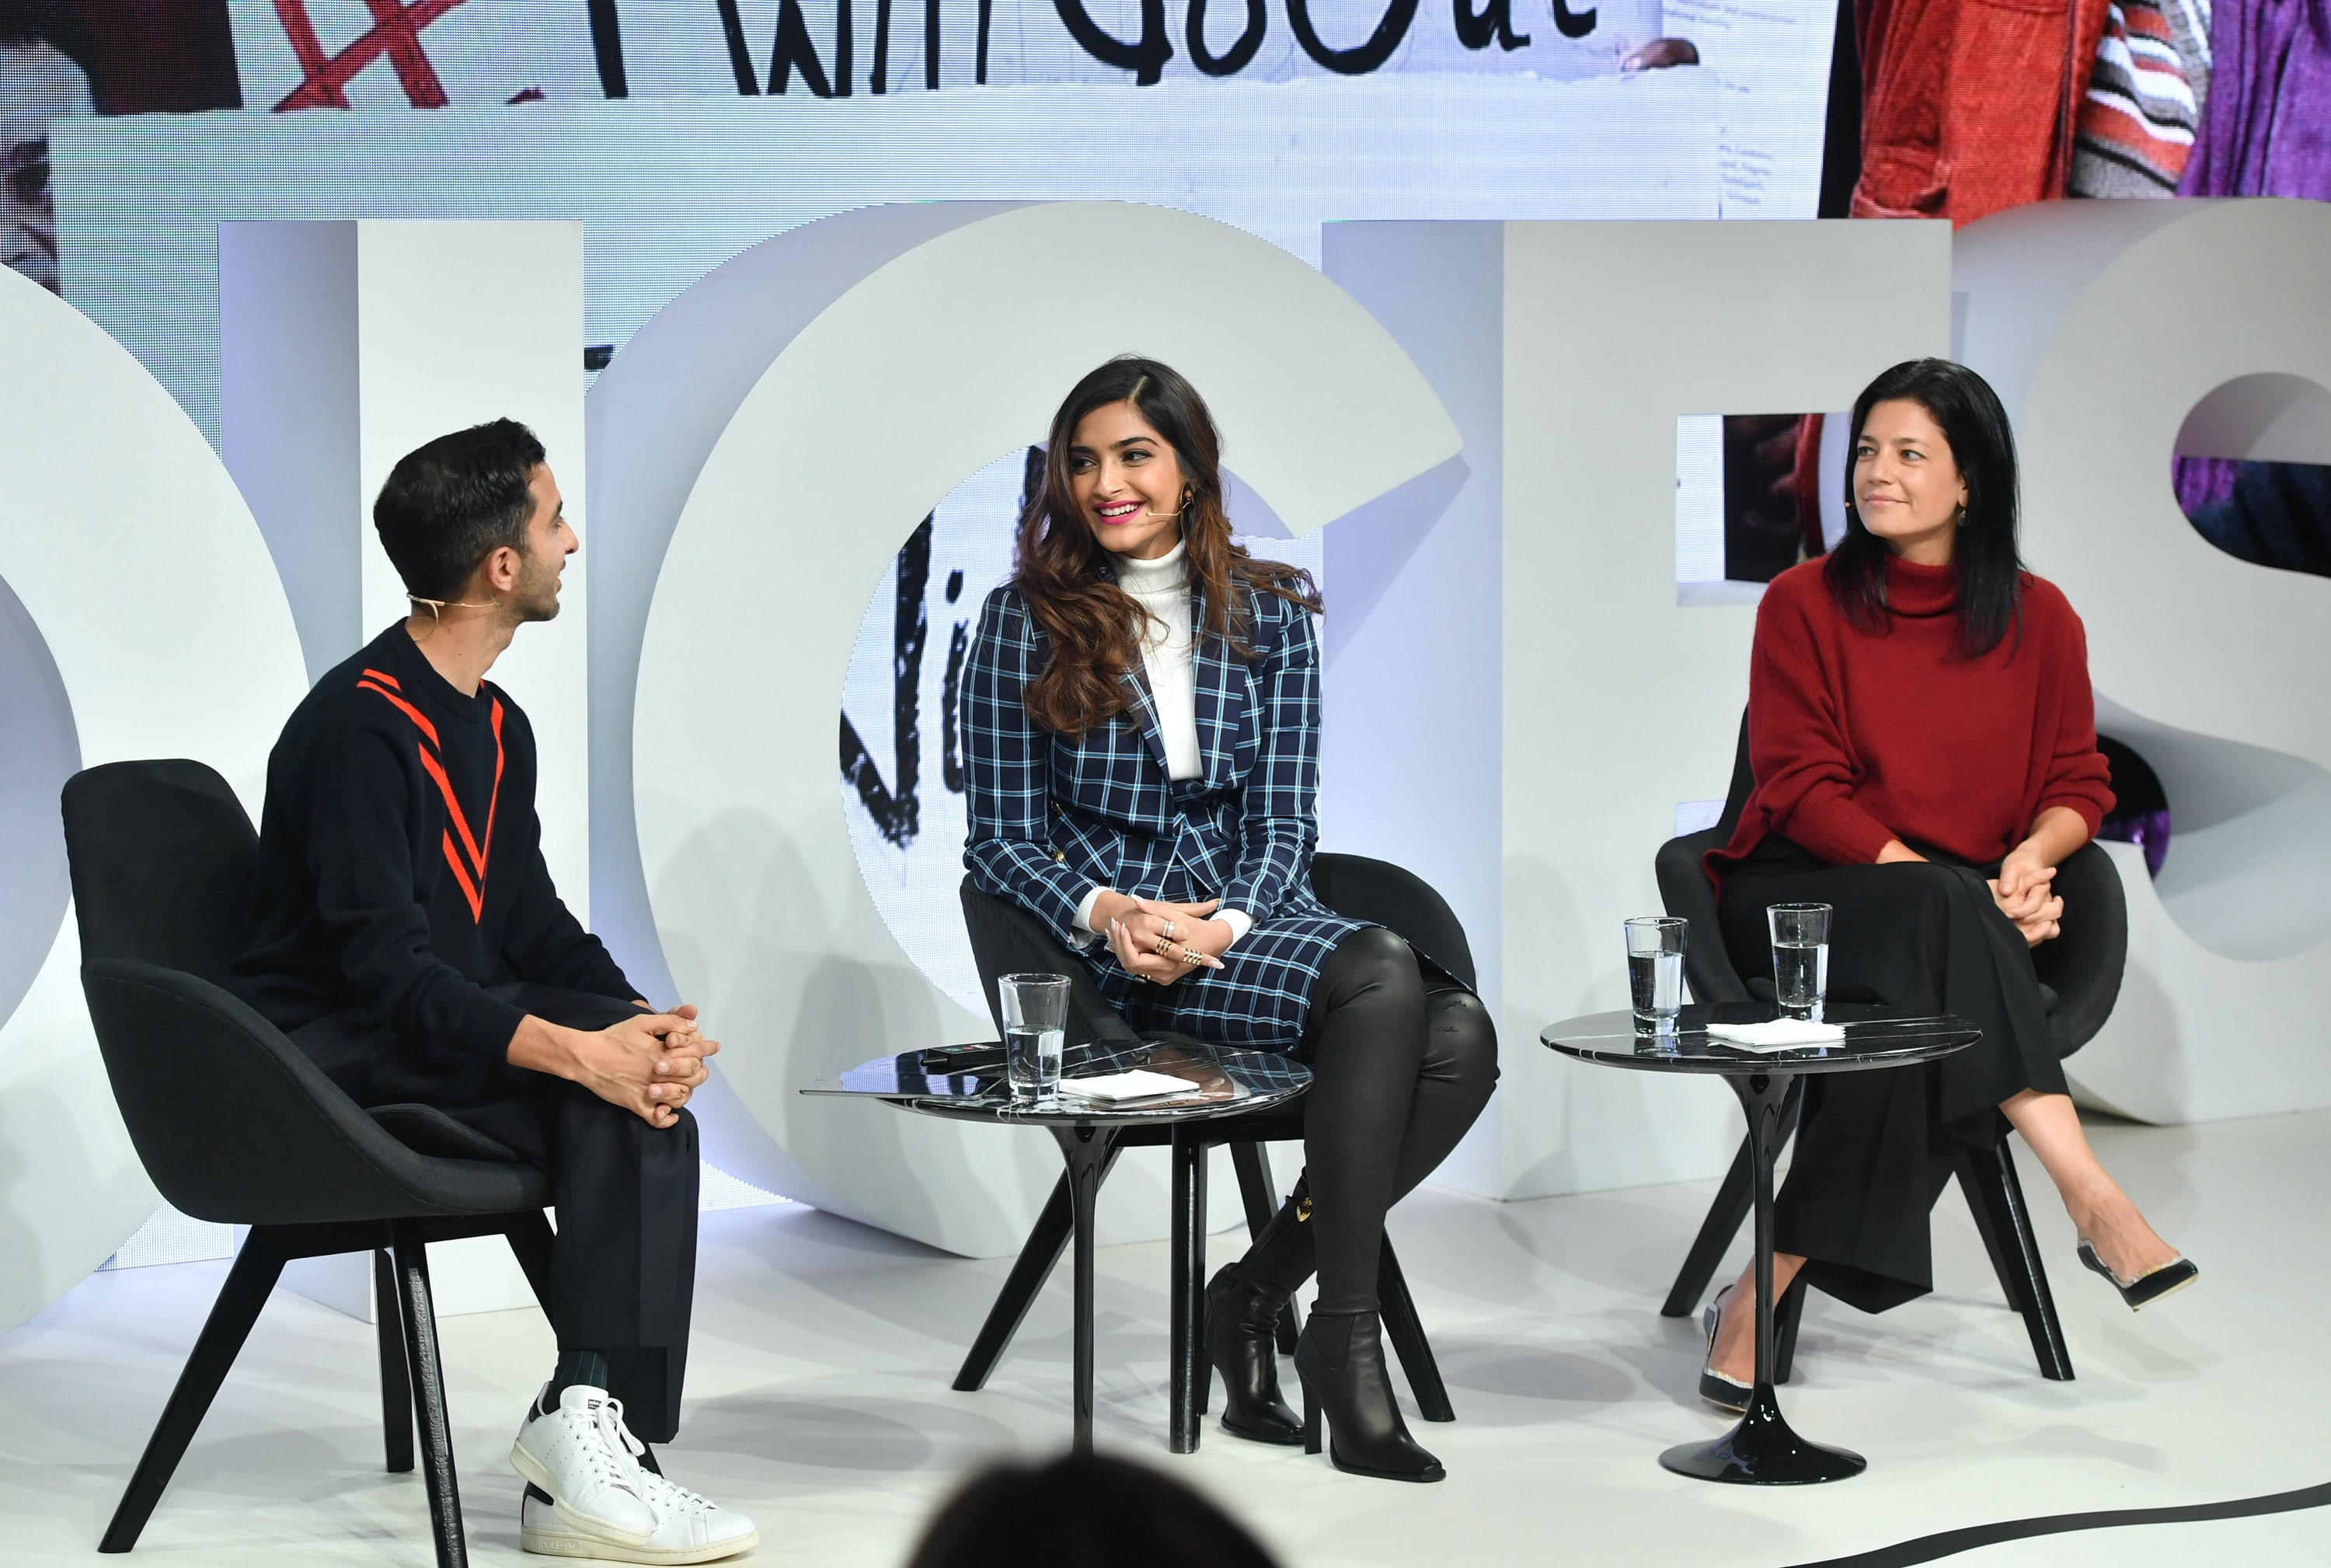 Imran Amed, Sonam Kapoor Ahuja and Karla Bookman speak on stage during #BoFVOICES